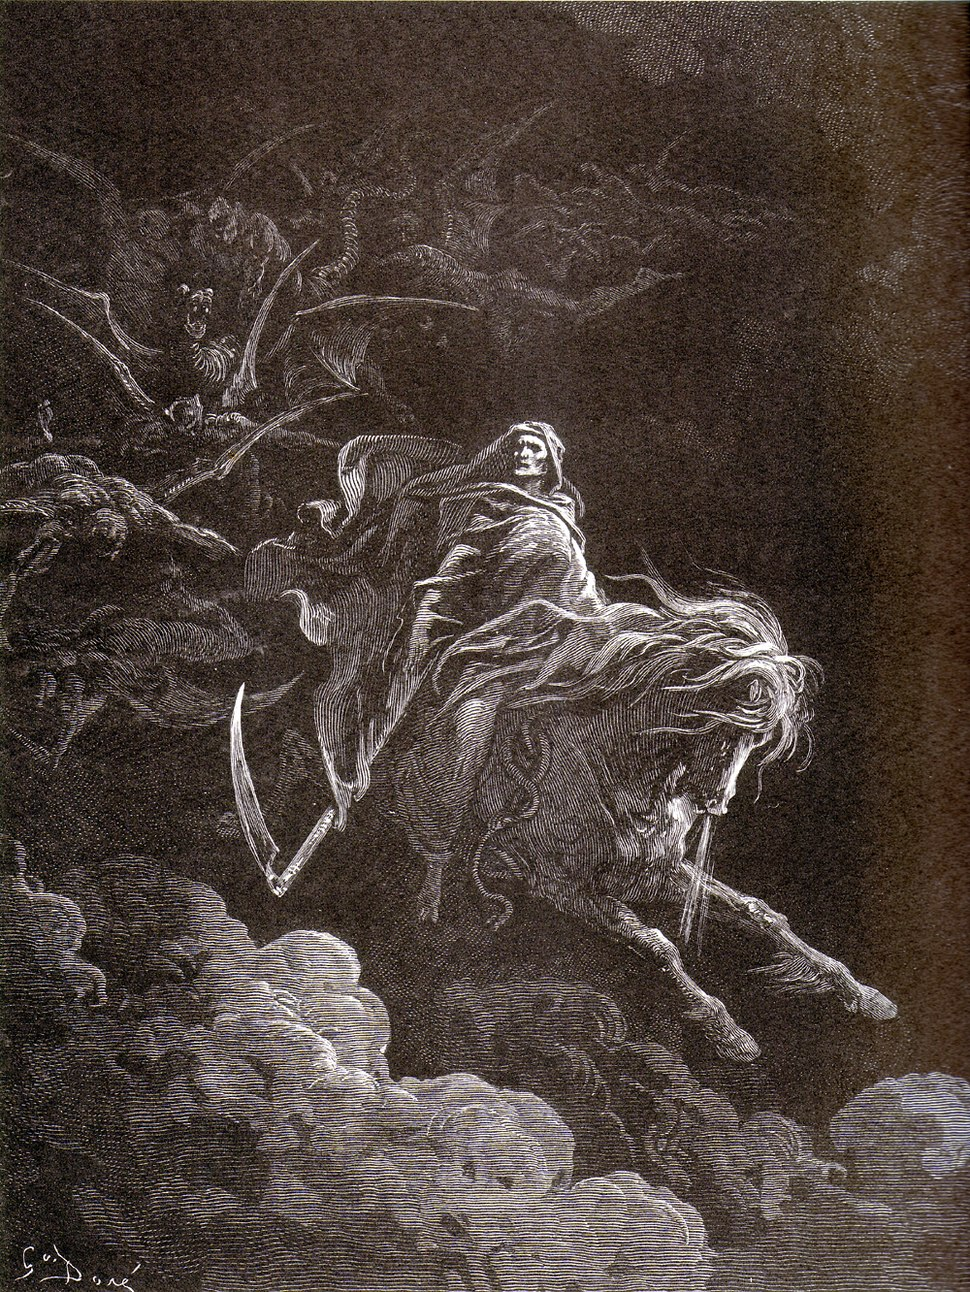 Gustave Doré - Death on the Pale Horse (1865)